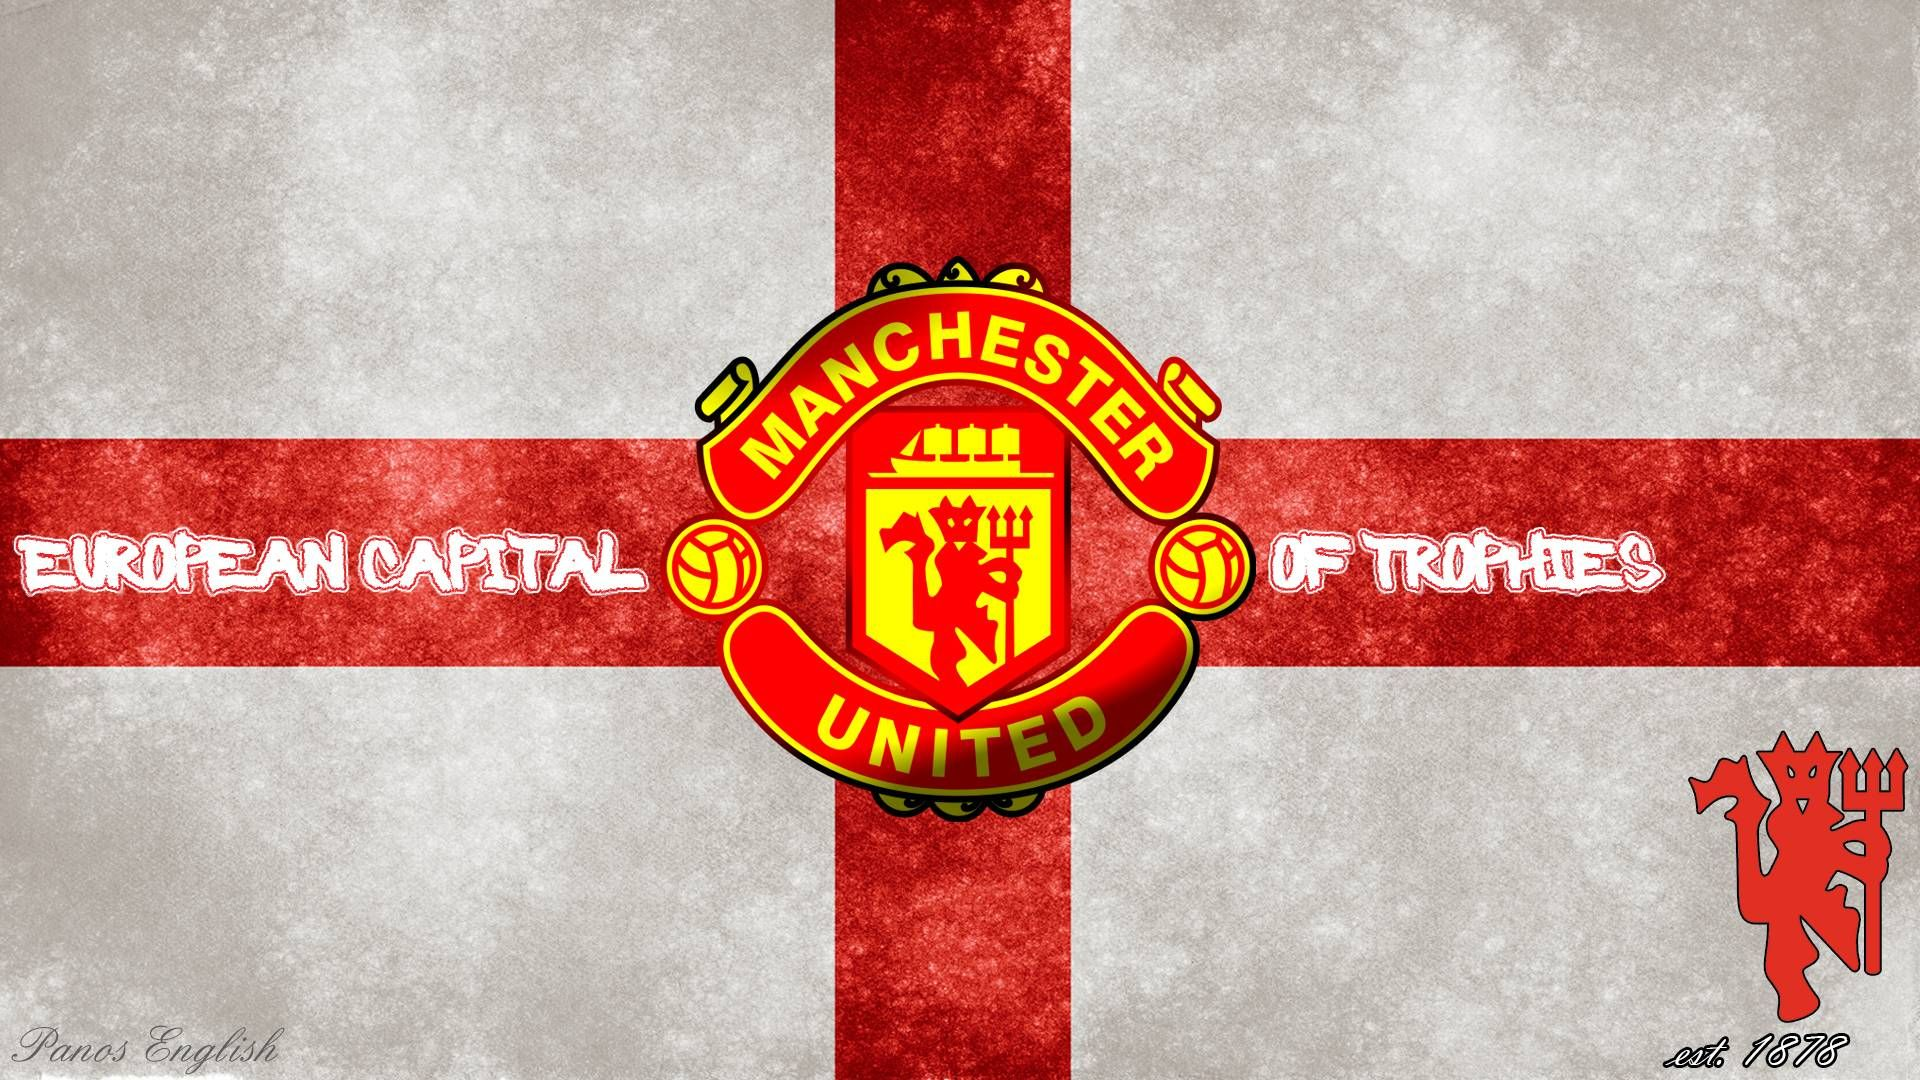 Free manchester united hd wallpapers backgrounds3g 19201080 free manchester united hd wallpapers backgrounds3g 1920 voltagebd Image collections